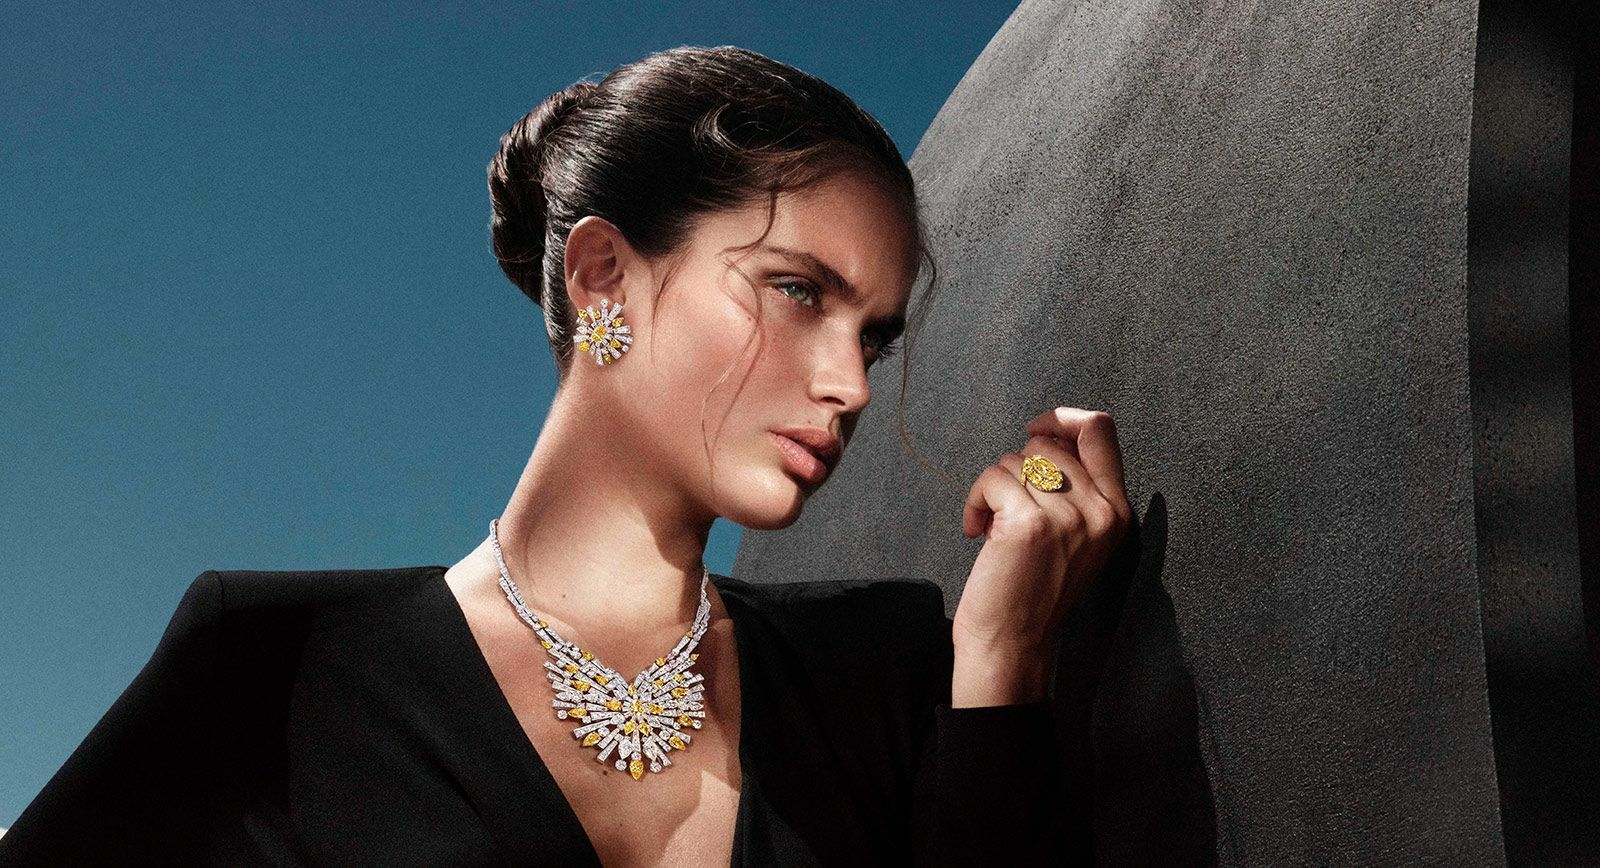 Graff Tribal High Jewellery Collection including a yellow and white diamond necklace of 65 carats